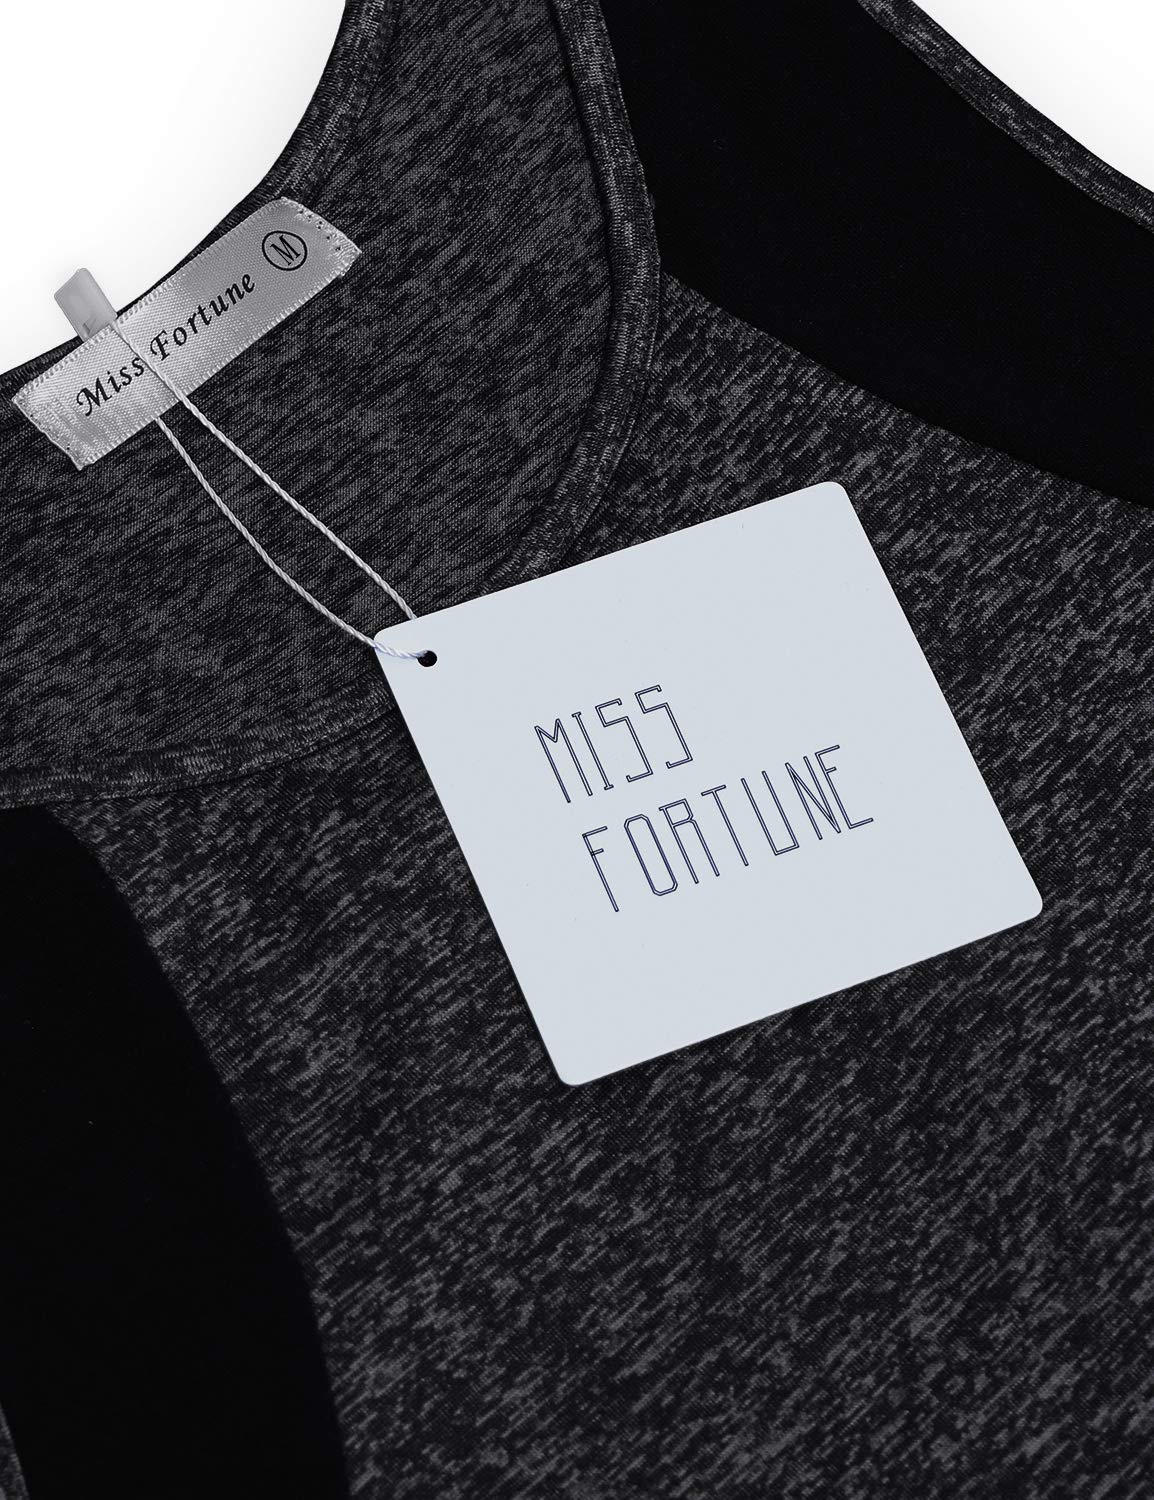 Miss Fortune Sleeveless Yoga Tops for Women, Crew Neck Casual Loose Comfy Burnout Light Breathable Racerback Workout Yoga Tank Tops Shirt Zumba Tennis Tanks Dark Gray M by Miss Fortune (Image #4)